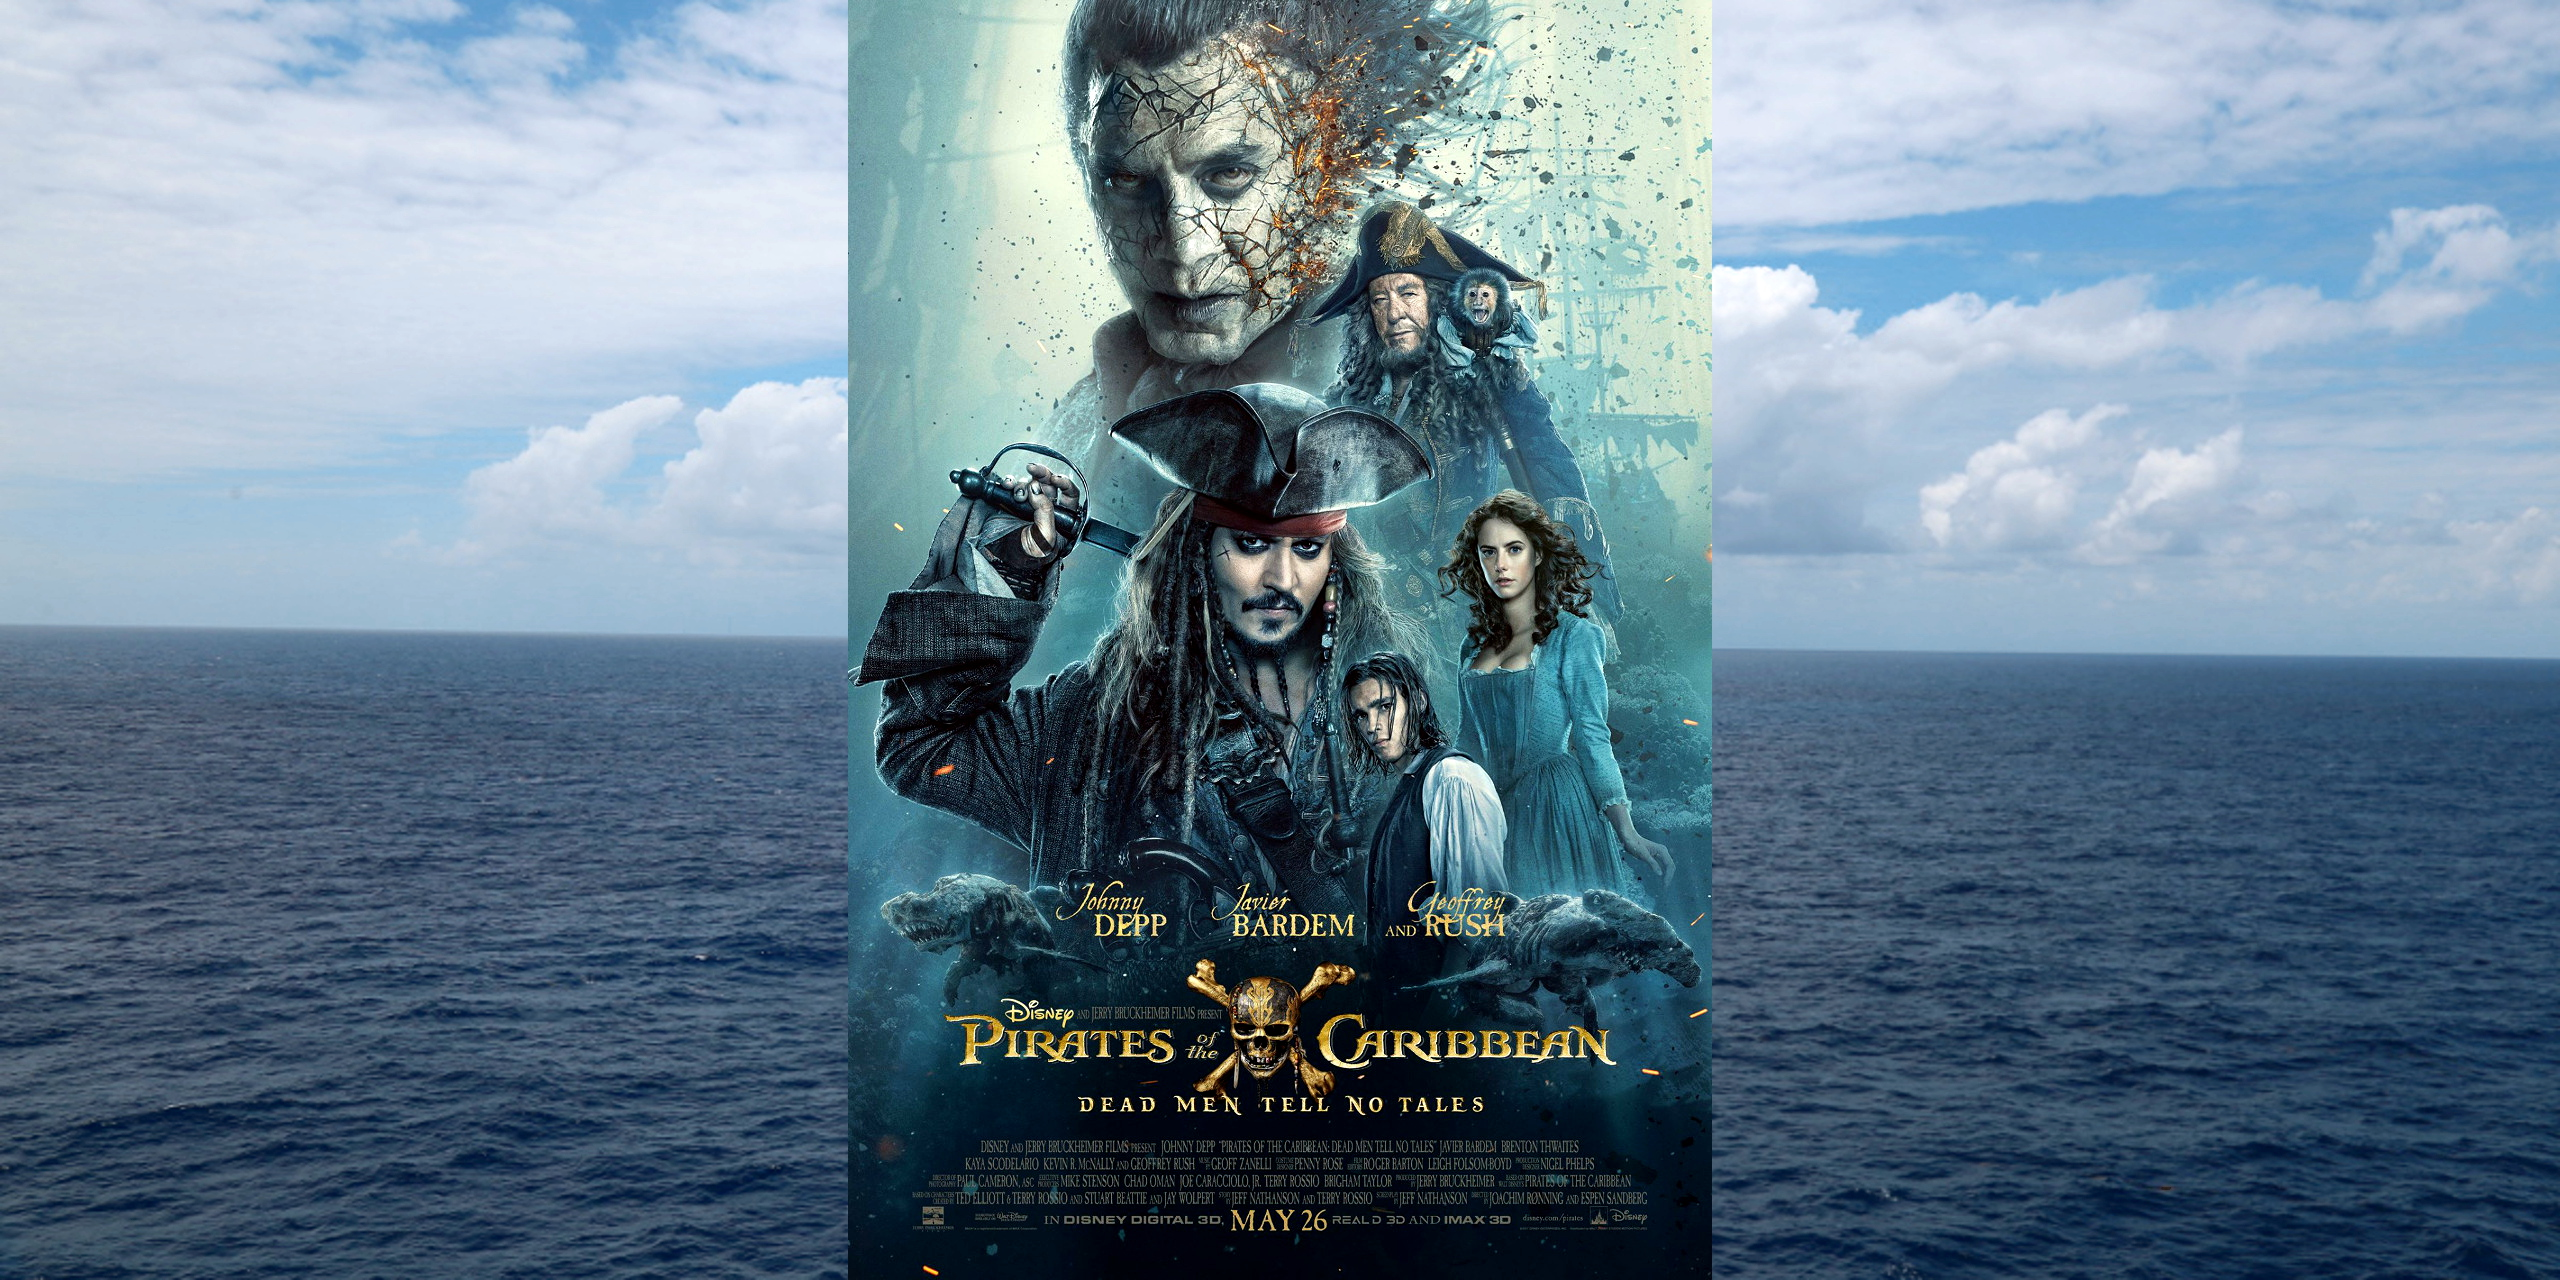 Pirates of the Caribbean – Dead Men Tell No Tales